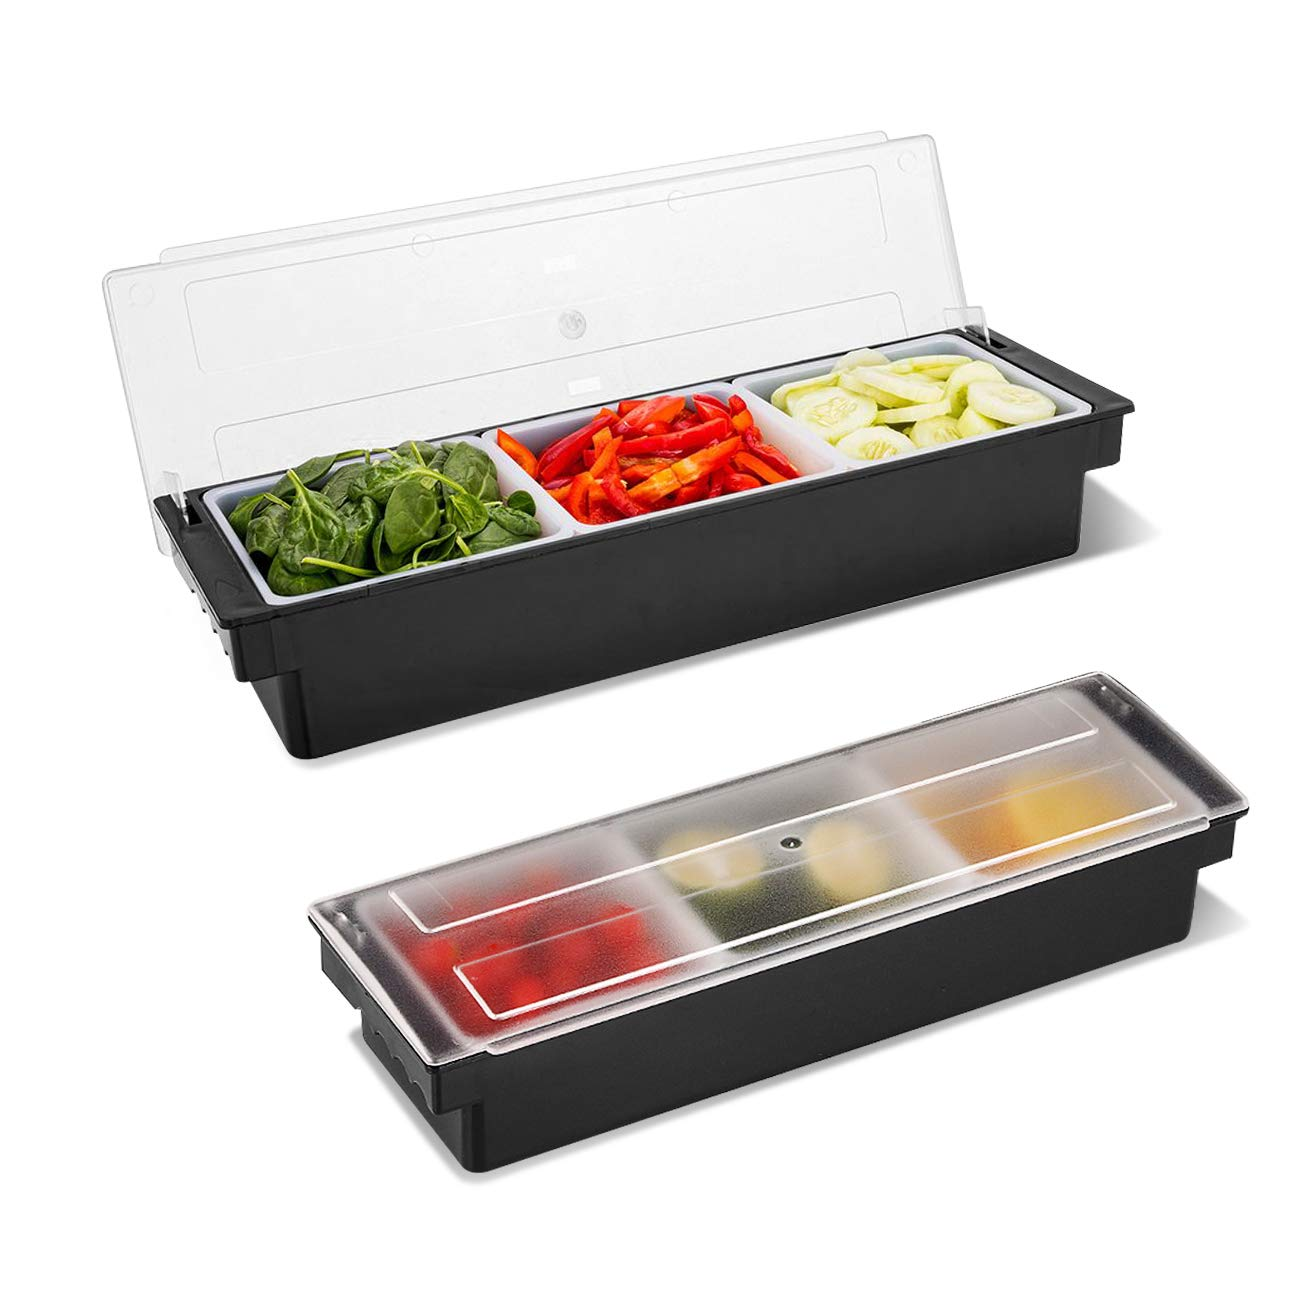 WICHEMI Condiment Caddy with Lid Dispenser Tray For Candy, Dips & Salad | Toppings Serving Container Chilled Garnish Tray Bar Fruit Caddy for Home Work or Restaurant (3 Compartment) 61lWiiHZ4vL